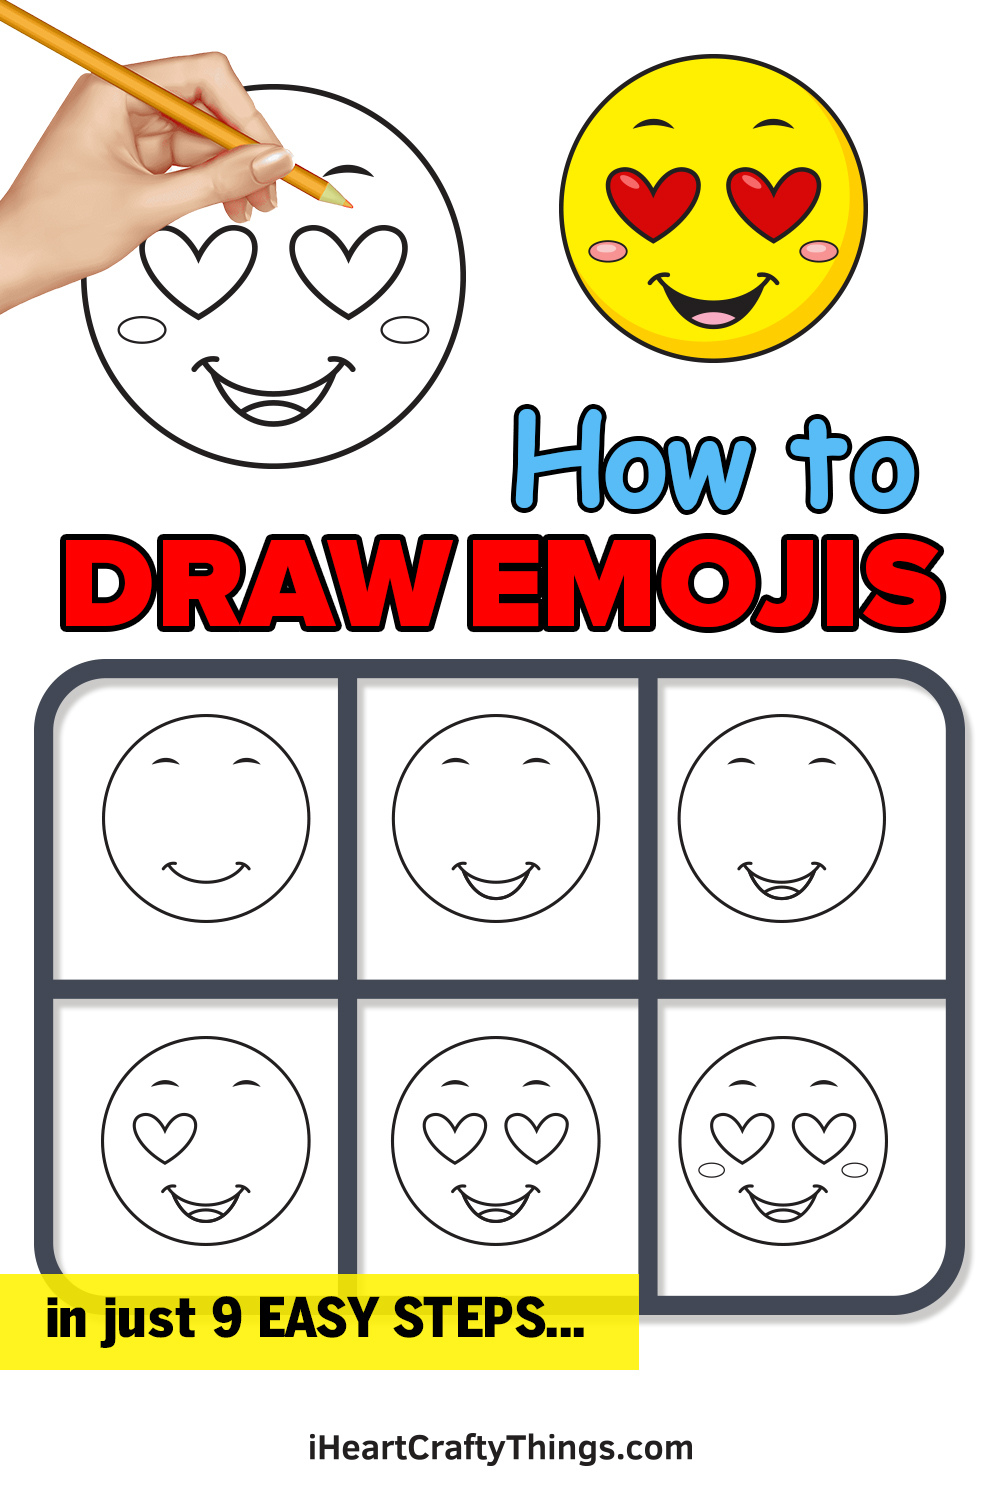 How to Draw Emojis in 9 Easy Steps